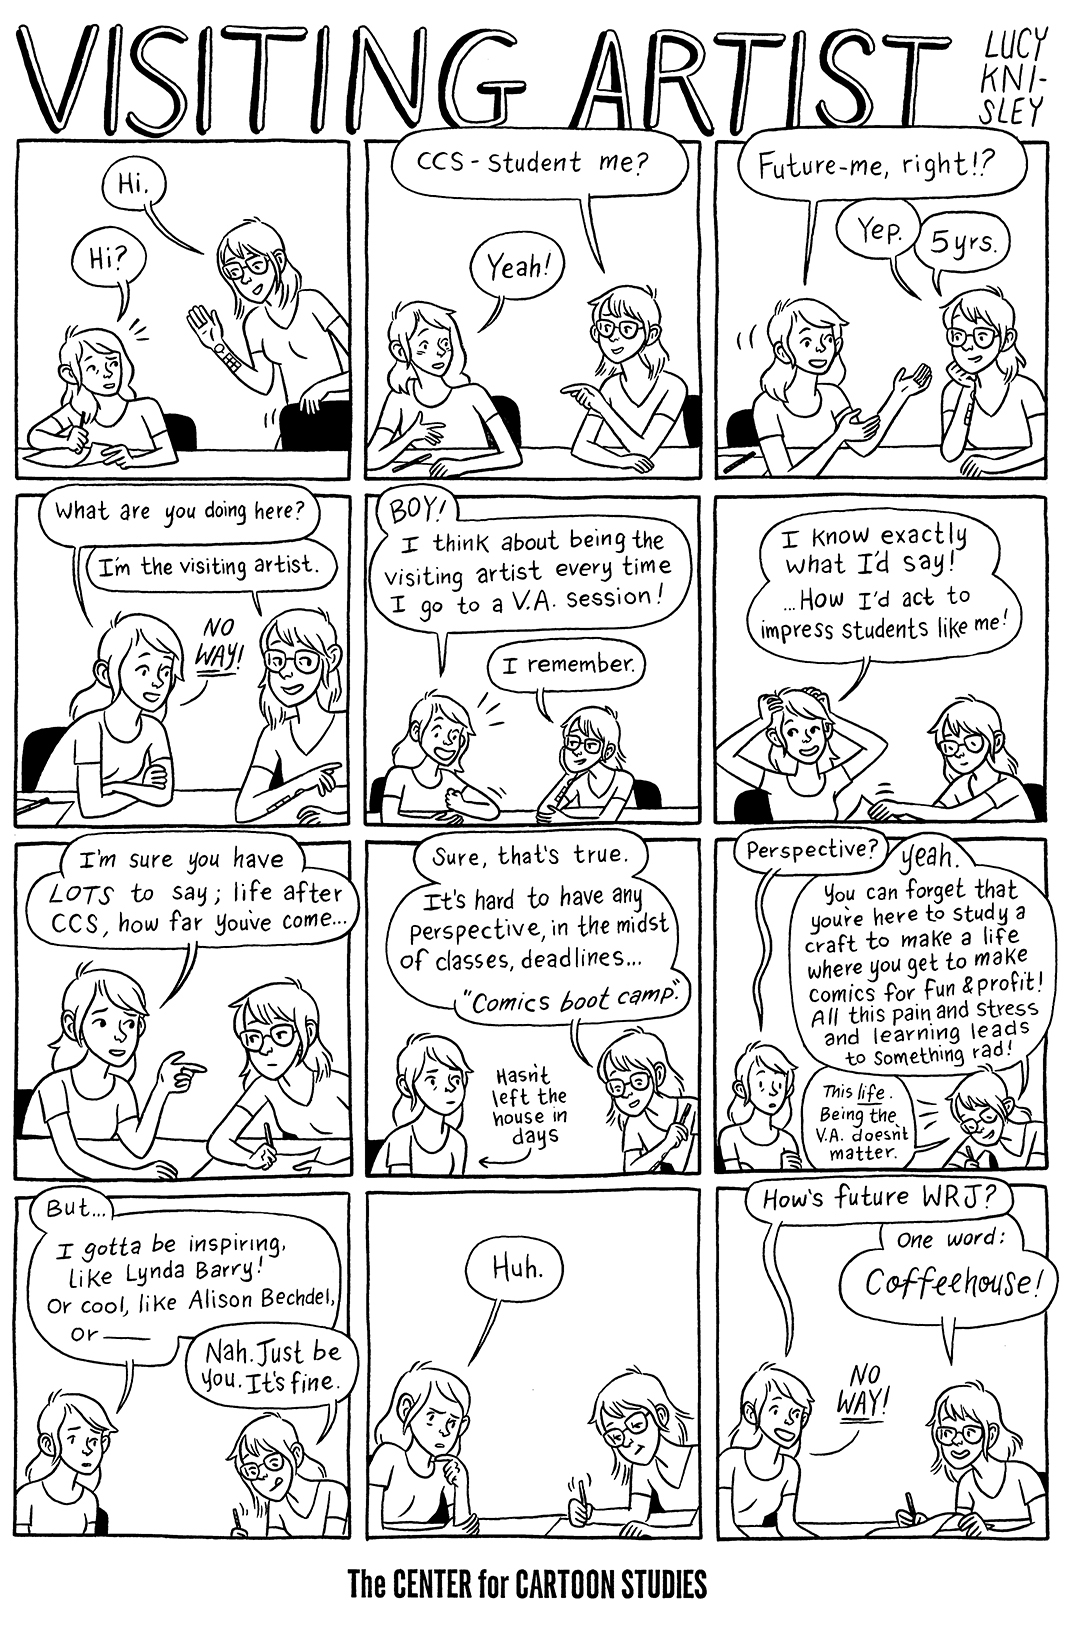 Here is the comic I did for the Center for Cartoon Studies visiting artist collection, which includes doodles and drawings by some of the esteemed visitors they've had over the past few years. Yesterday I gave my presentation to the school, and it was pretty amazing to feel the swell of comics energy and interest that radiated from the students. It's always so fascinating and weird to revisit places from our past. When I went to school here, I used to joke that this little old train village seemed like a ghost town, with its sparse populace, old-timey buildings and looming pine trees. It's interesting to think about the ghosts of ourselves that we leave behind. This town did NOT have a coffeehouse when I lived here, and I'm SUPER JEALOUS of it. The town has changed a lot in five years, but much is still the same. The typewriter repair shop, for example, STILL OPEN. HOW. WHY. WHAT.